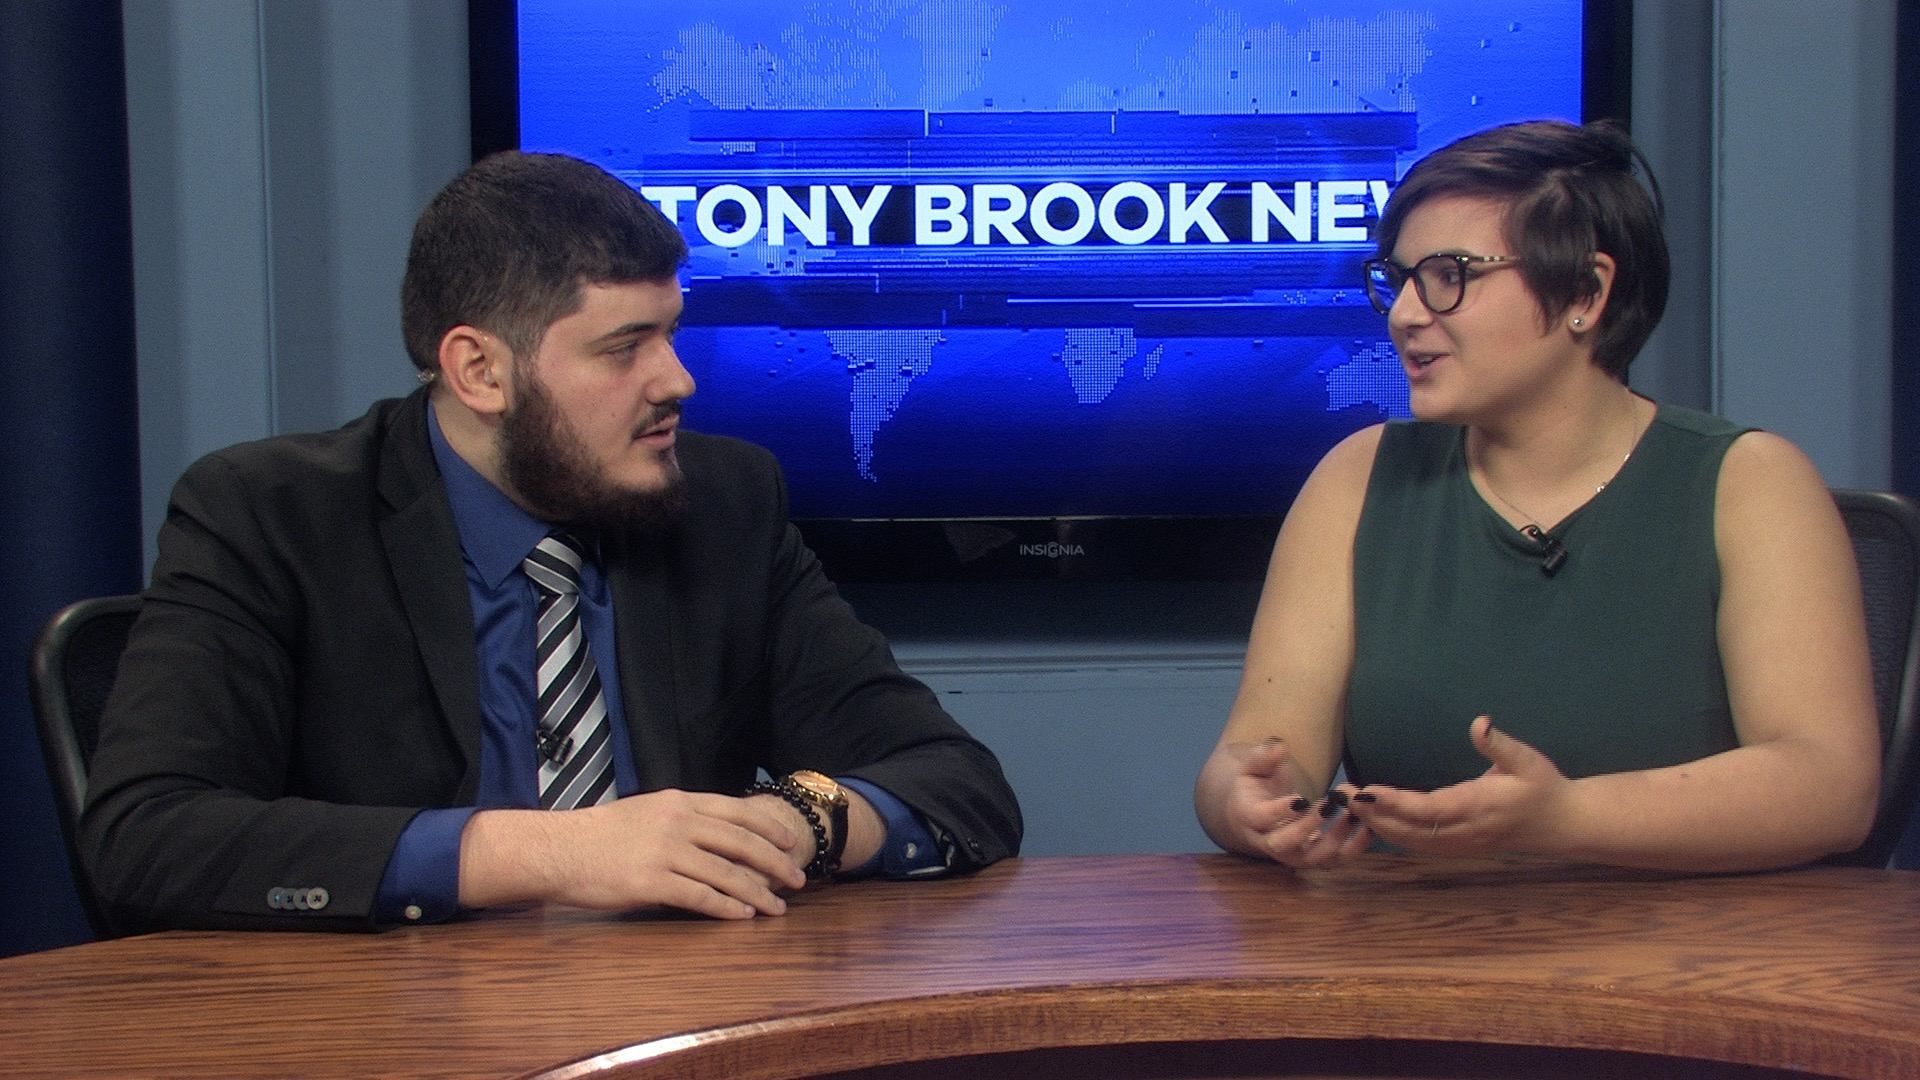 Stony Brook News – February 25, 2019